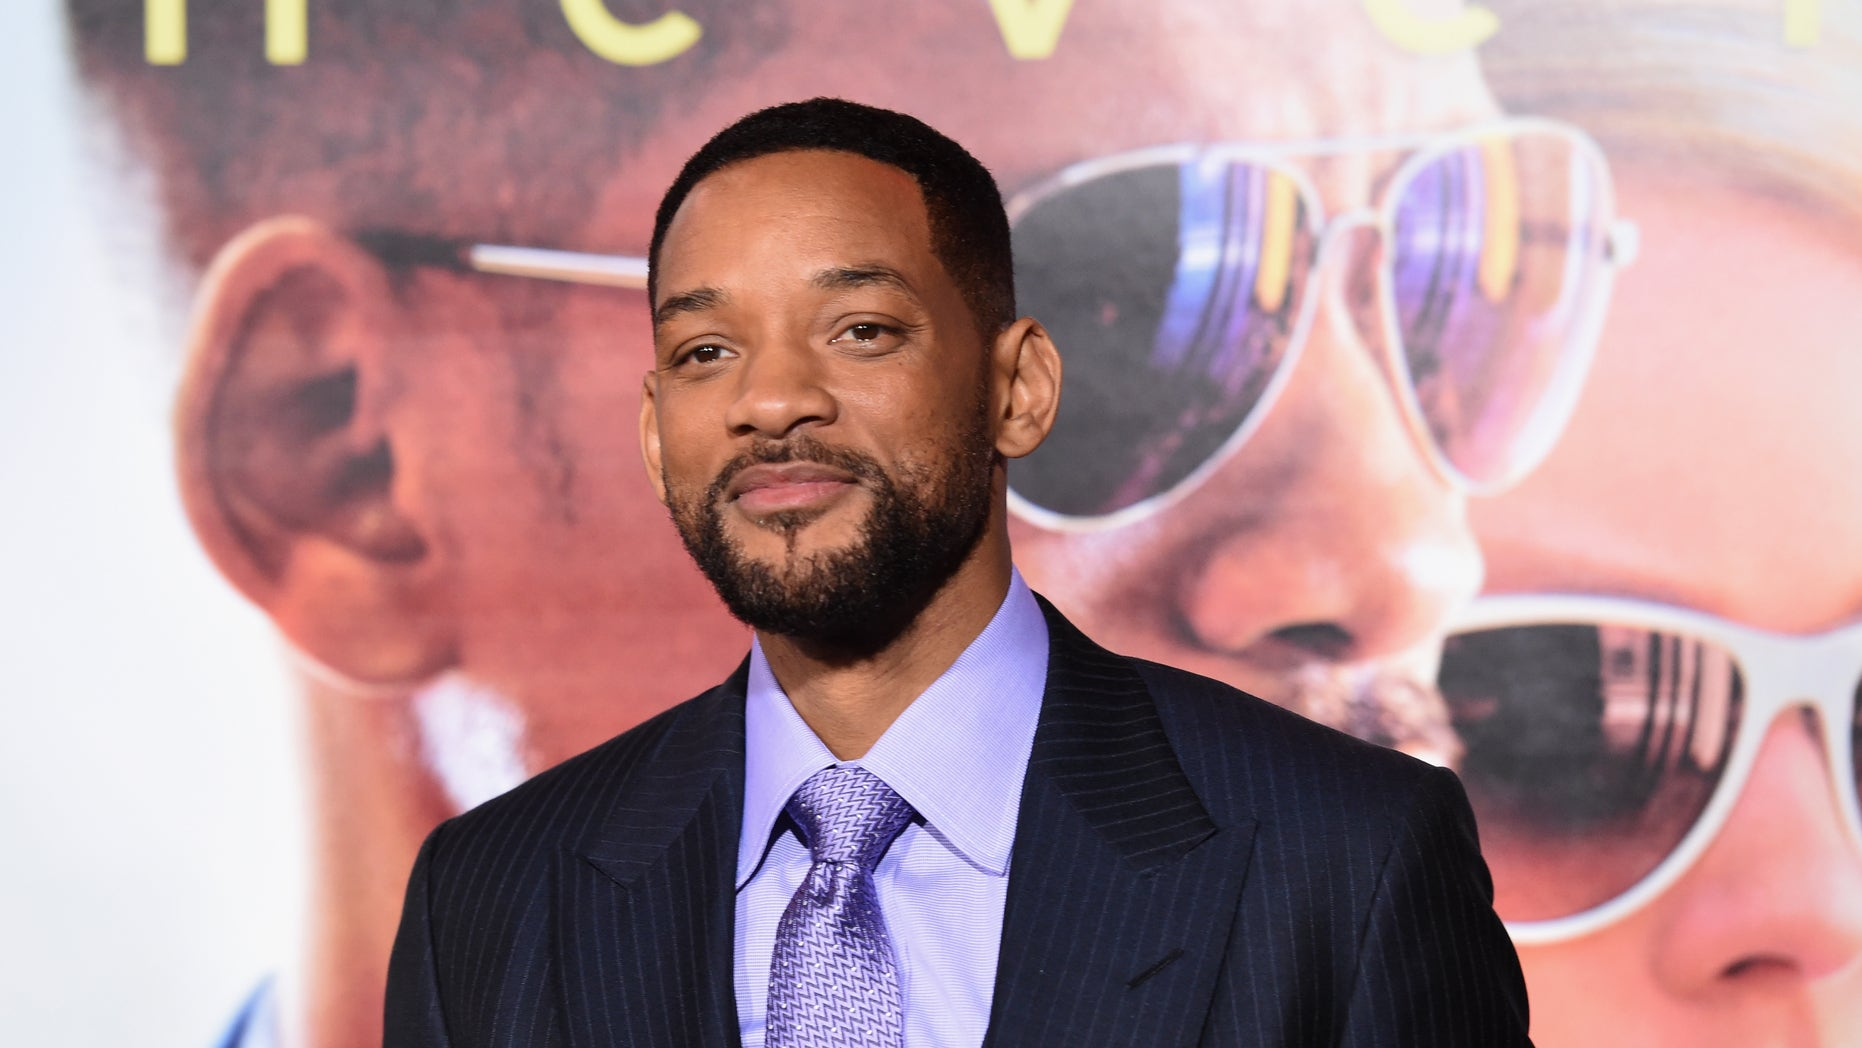 Actor Will Smith caught some negative attention over his latest film project.